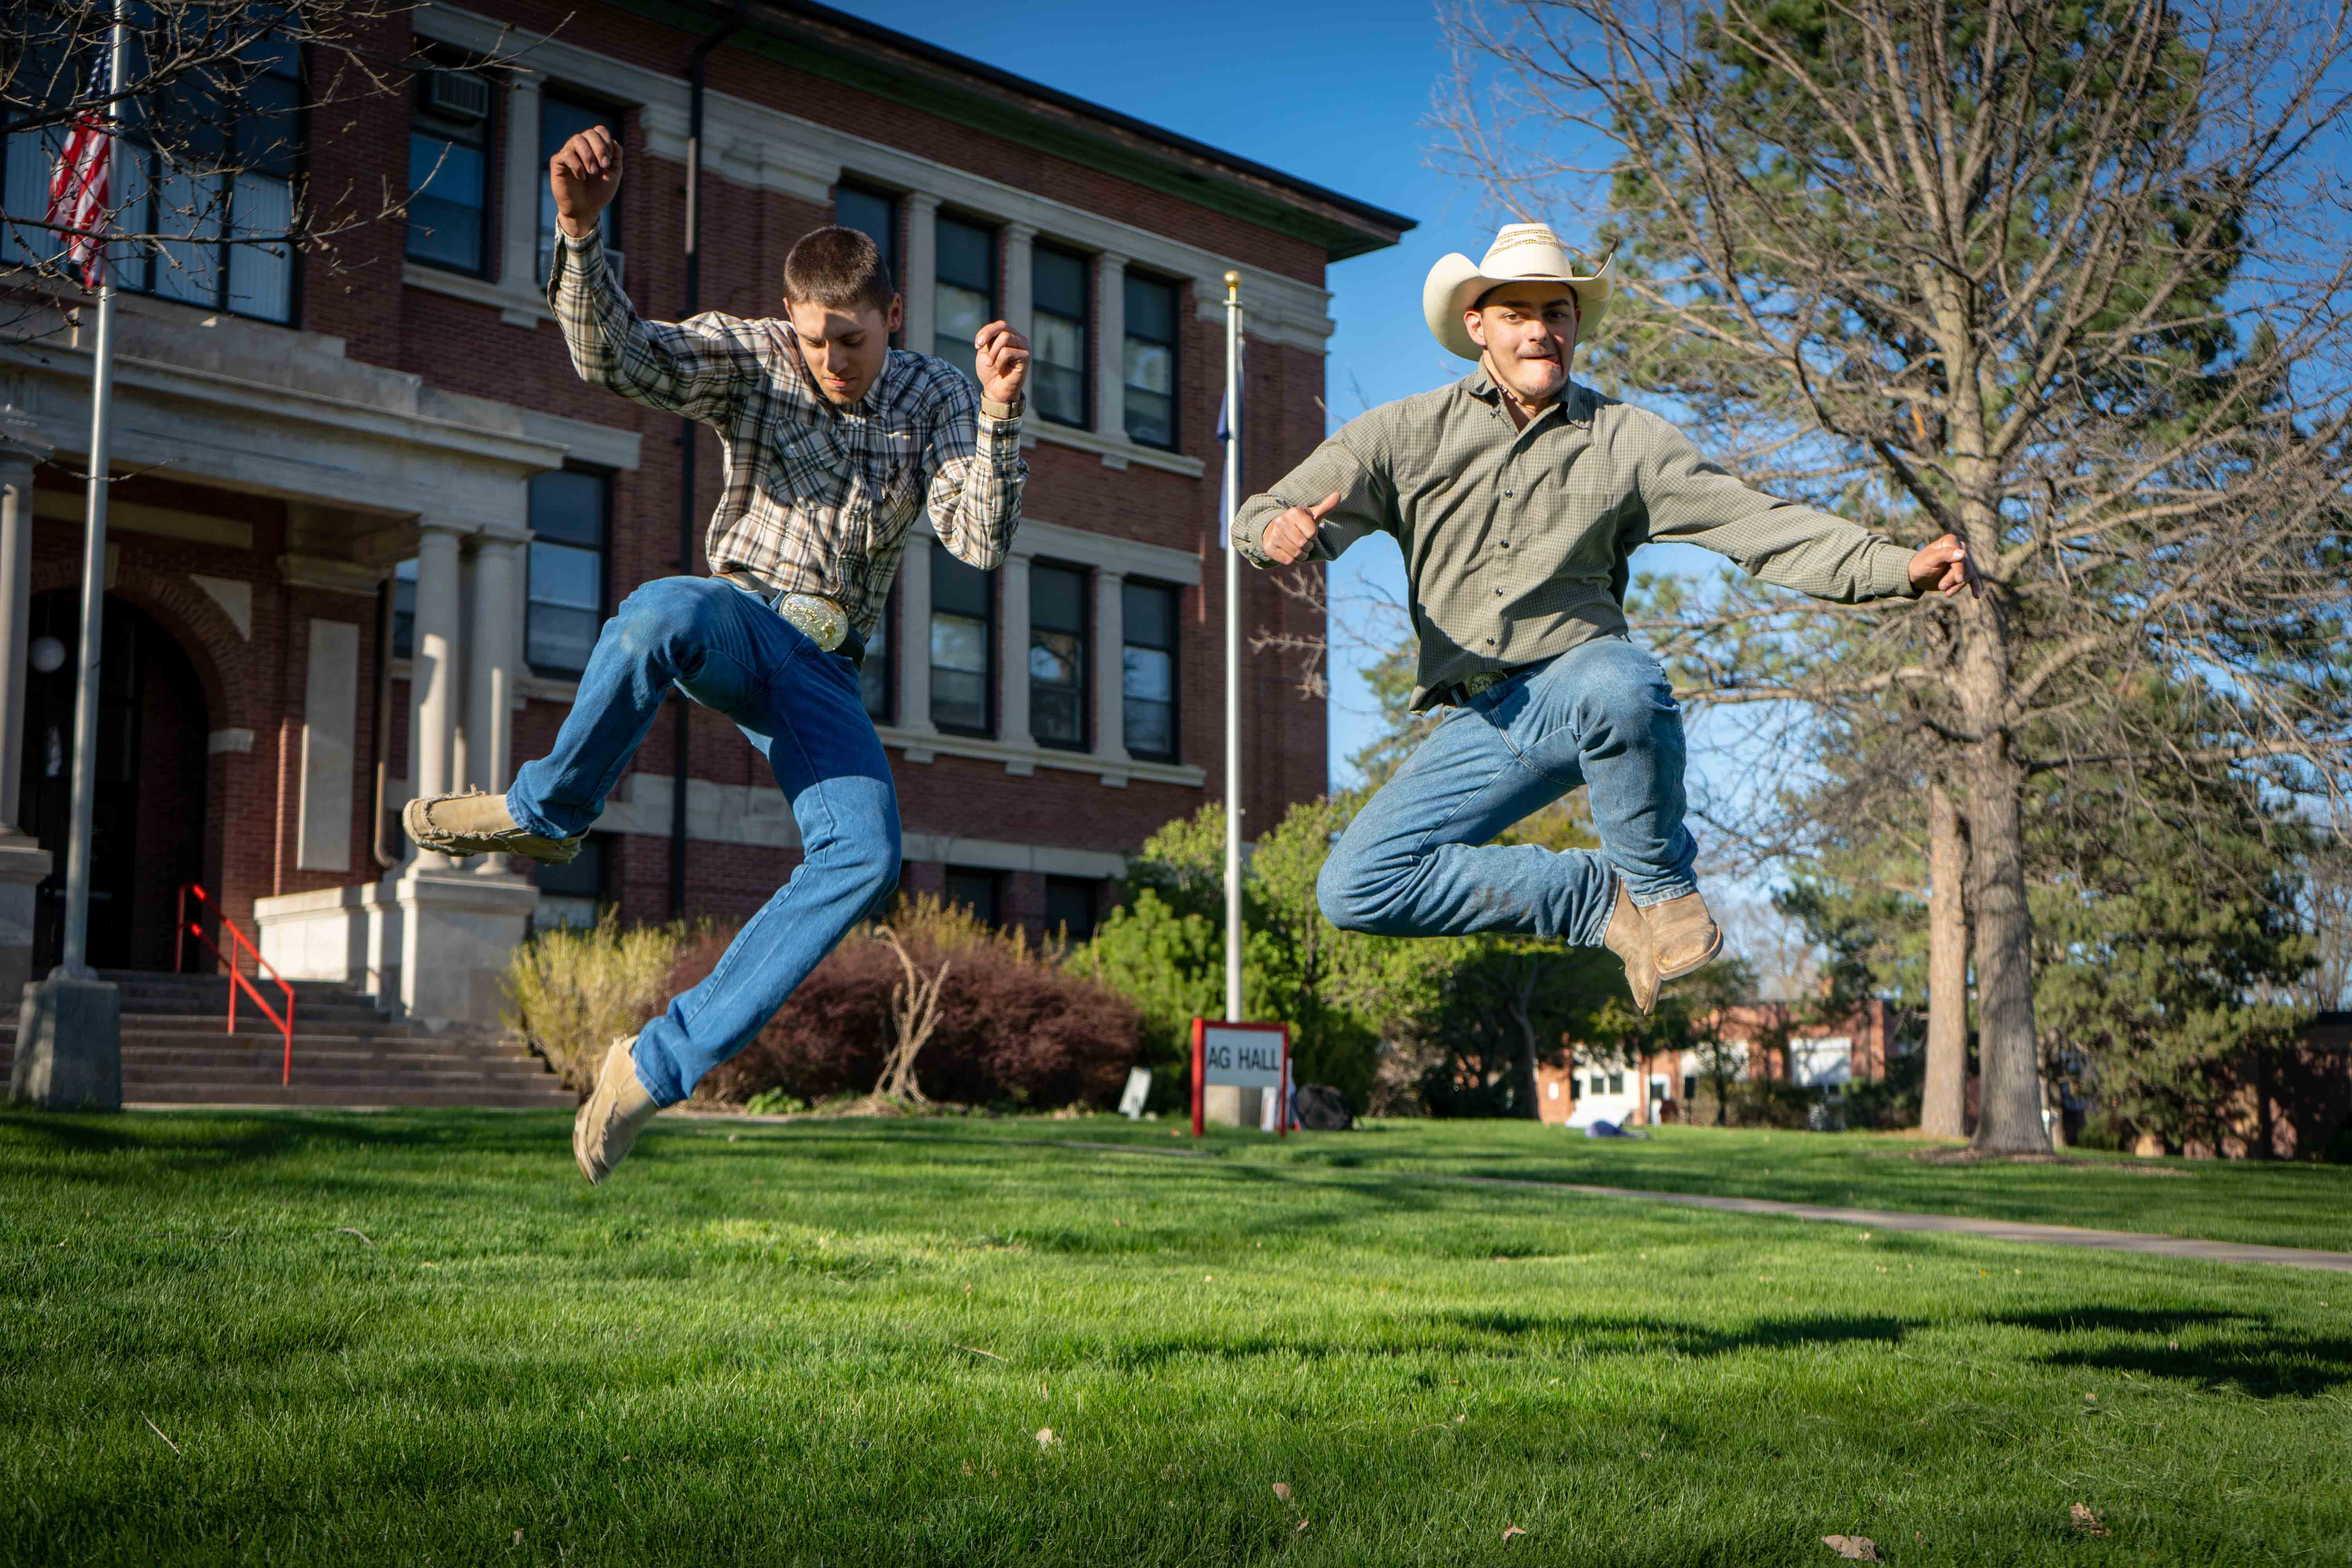 Cowboys demonstrate a bit of Aggie athleticism last spring. The two study animal science and have campus jobs with the NCTA farm in livestock management. (NCTA/Cannon Photo)